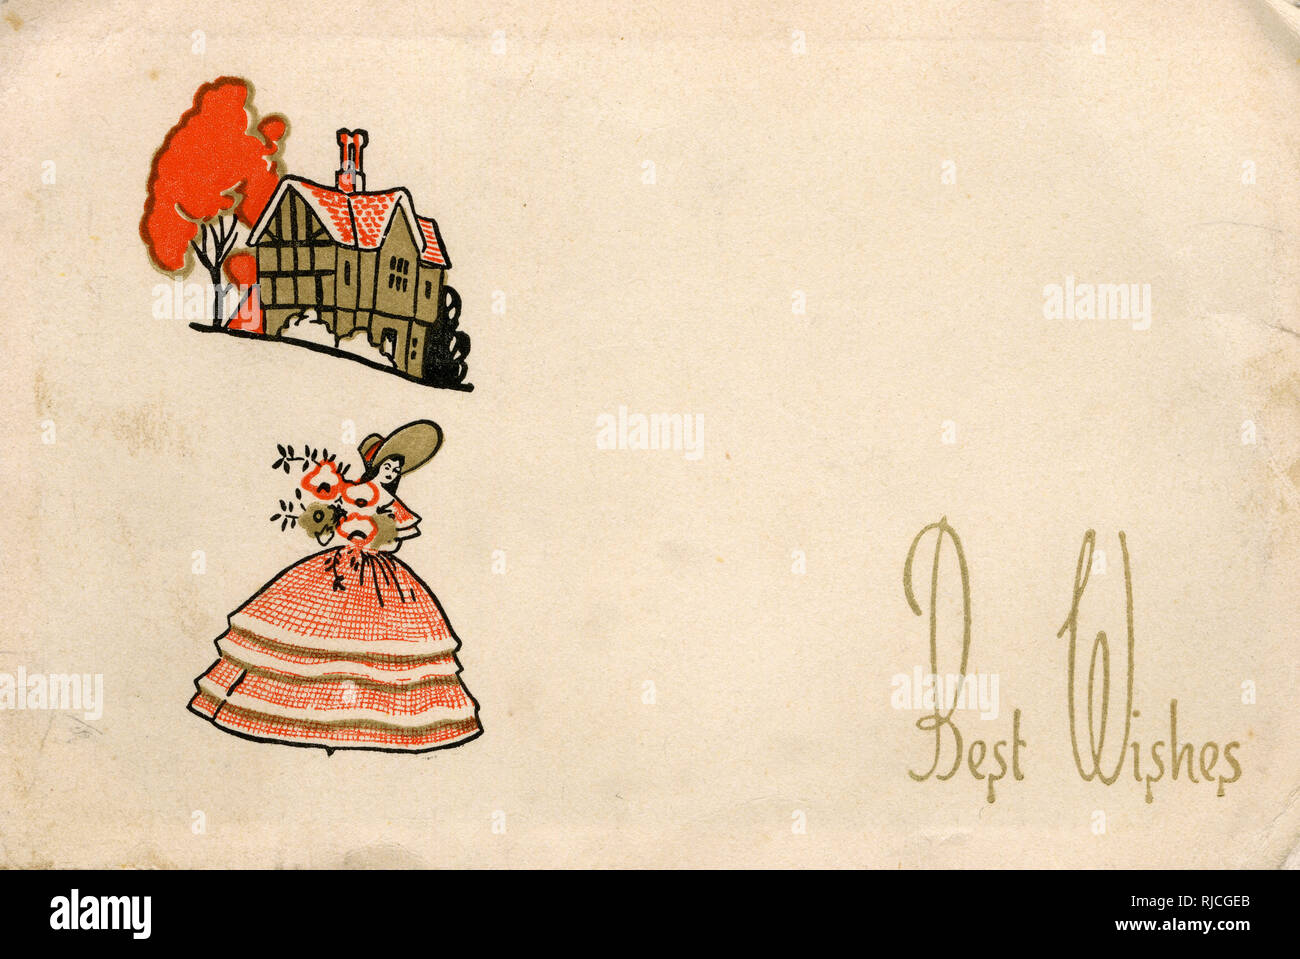 The front cover of a greetings cards, circa 1930s, showing a stylised lady in a crinoline dress holding a bouquet of flowers, with a timbered house in the background. - Stock Image